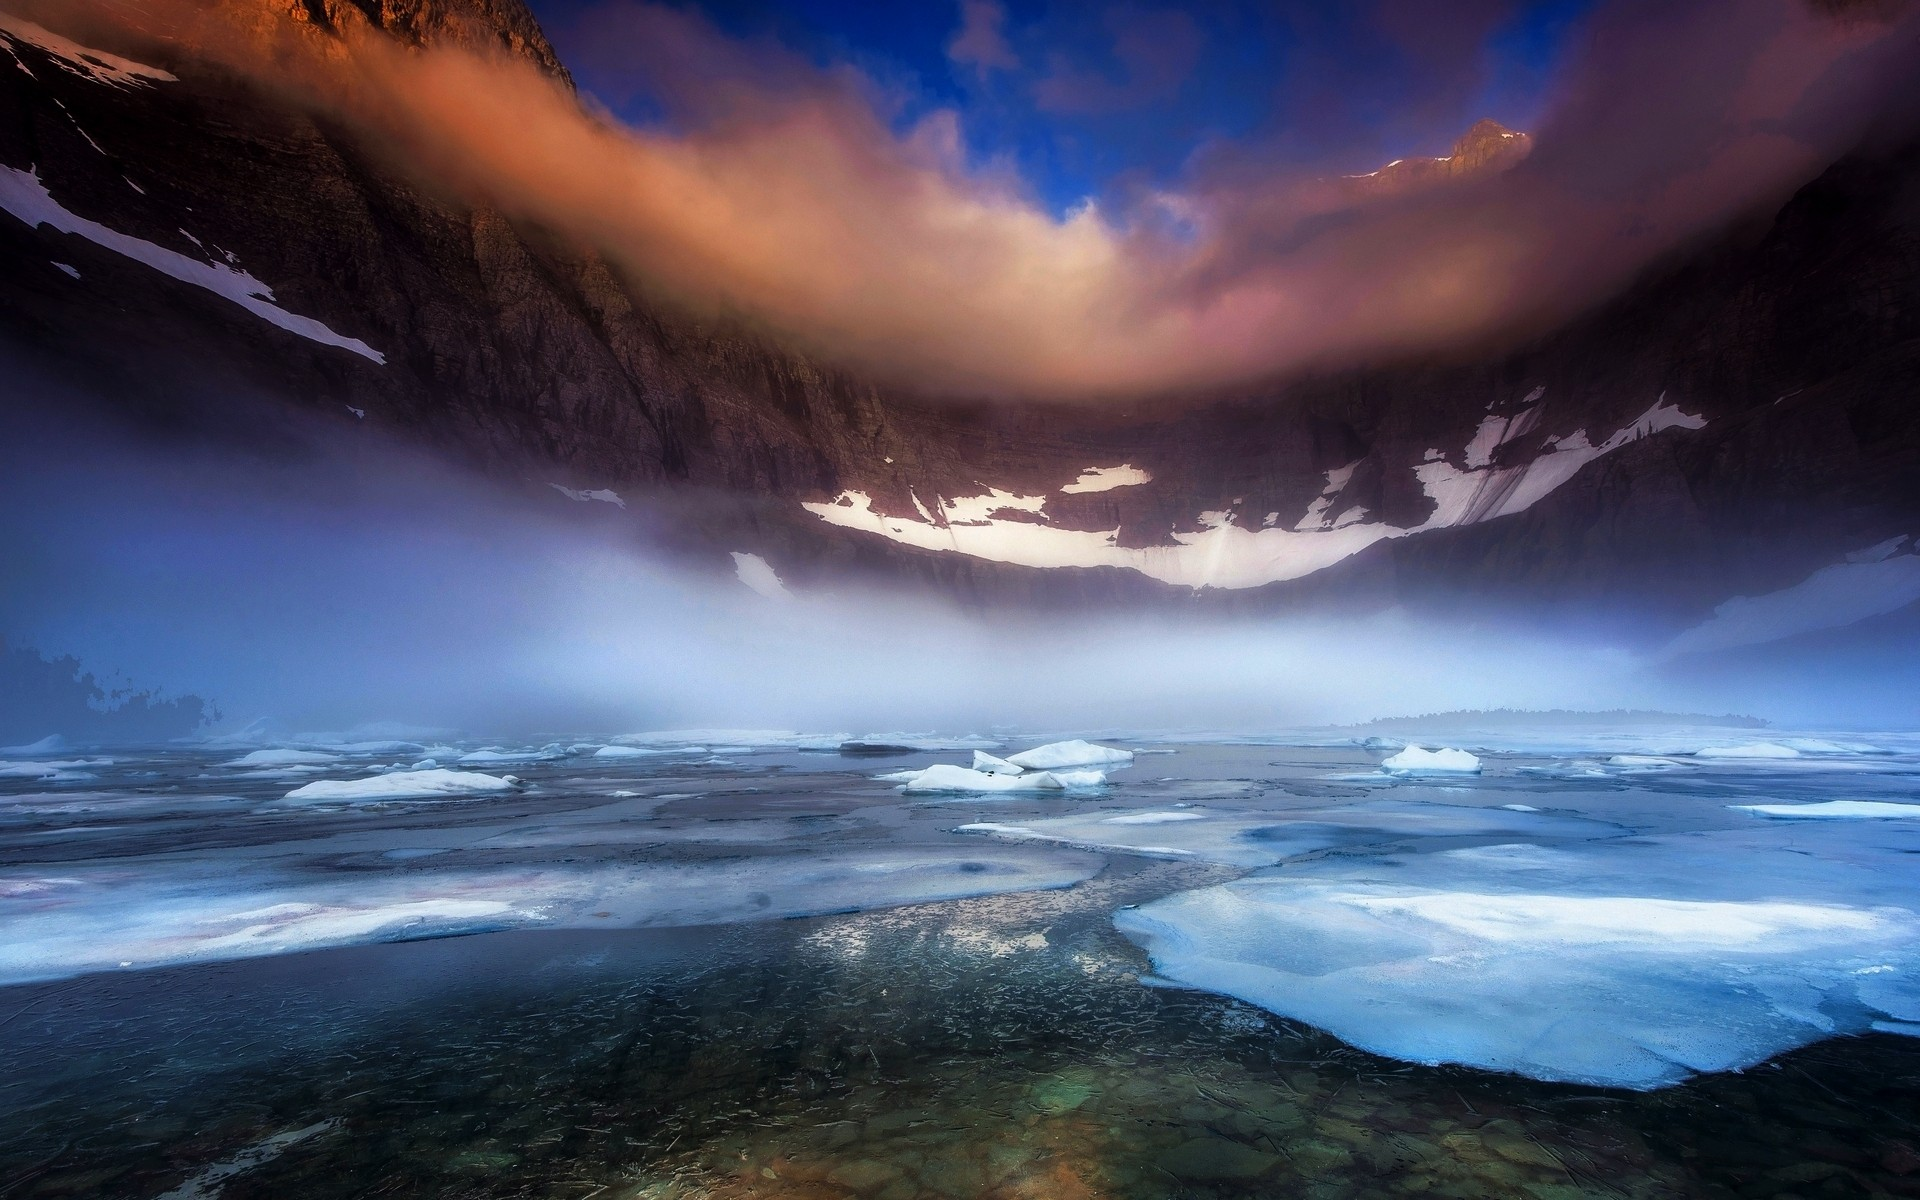 General 1920x1200 nature landscape lake Glacier National Park morning mist mountains frost ice snow clouds